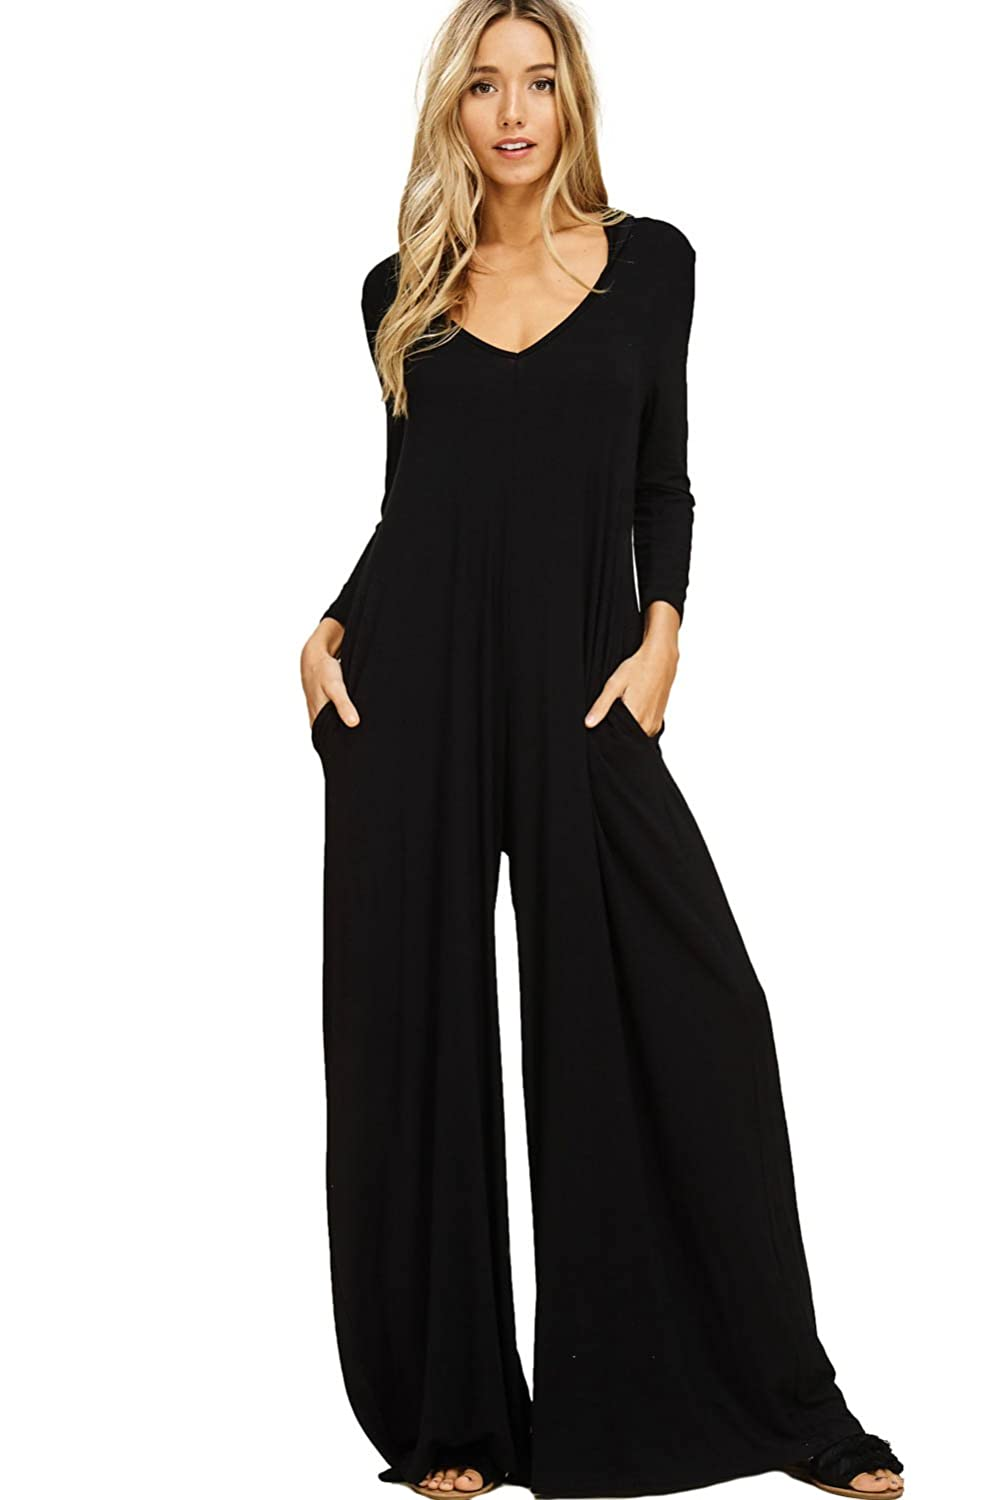 550d54fd15c28 Three Quarter Sleeves, Wide Leg, Loose Fit Everyday Wear, Comfortable  Lounge Wear; Light Weight Fabric, Soft and Cozy, to Ensure you Feel  Comfortable